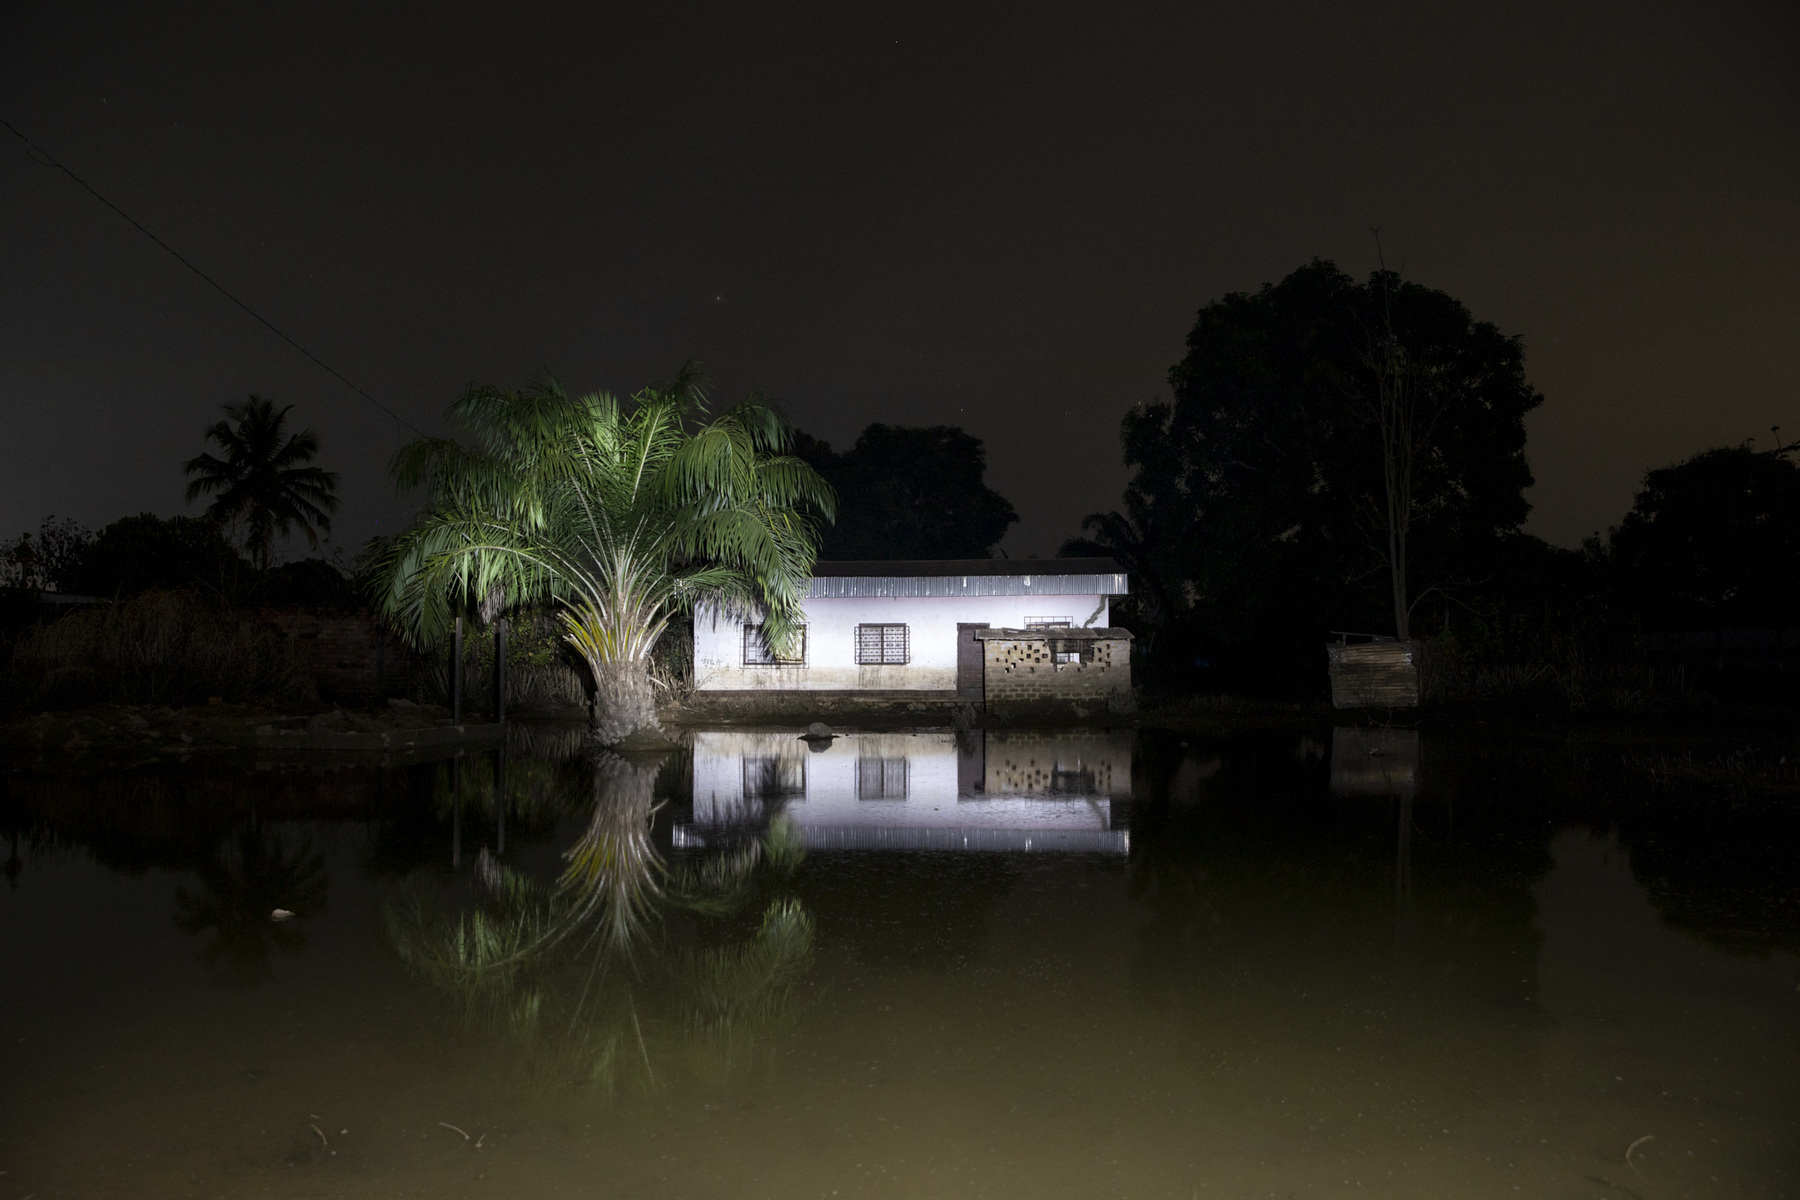 Adrienne Surprenant - A house is seen at night in a flooded neighbourhood of Bangui, capital of the Central African Republic, during a night patrol organised by the neighbourhoods youth.